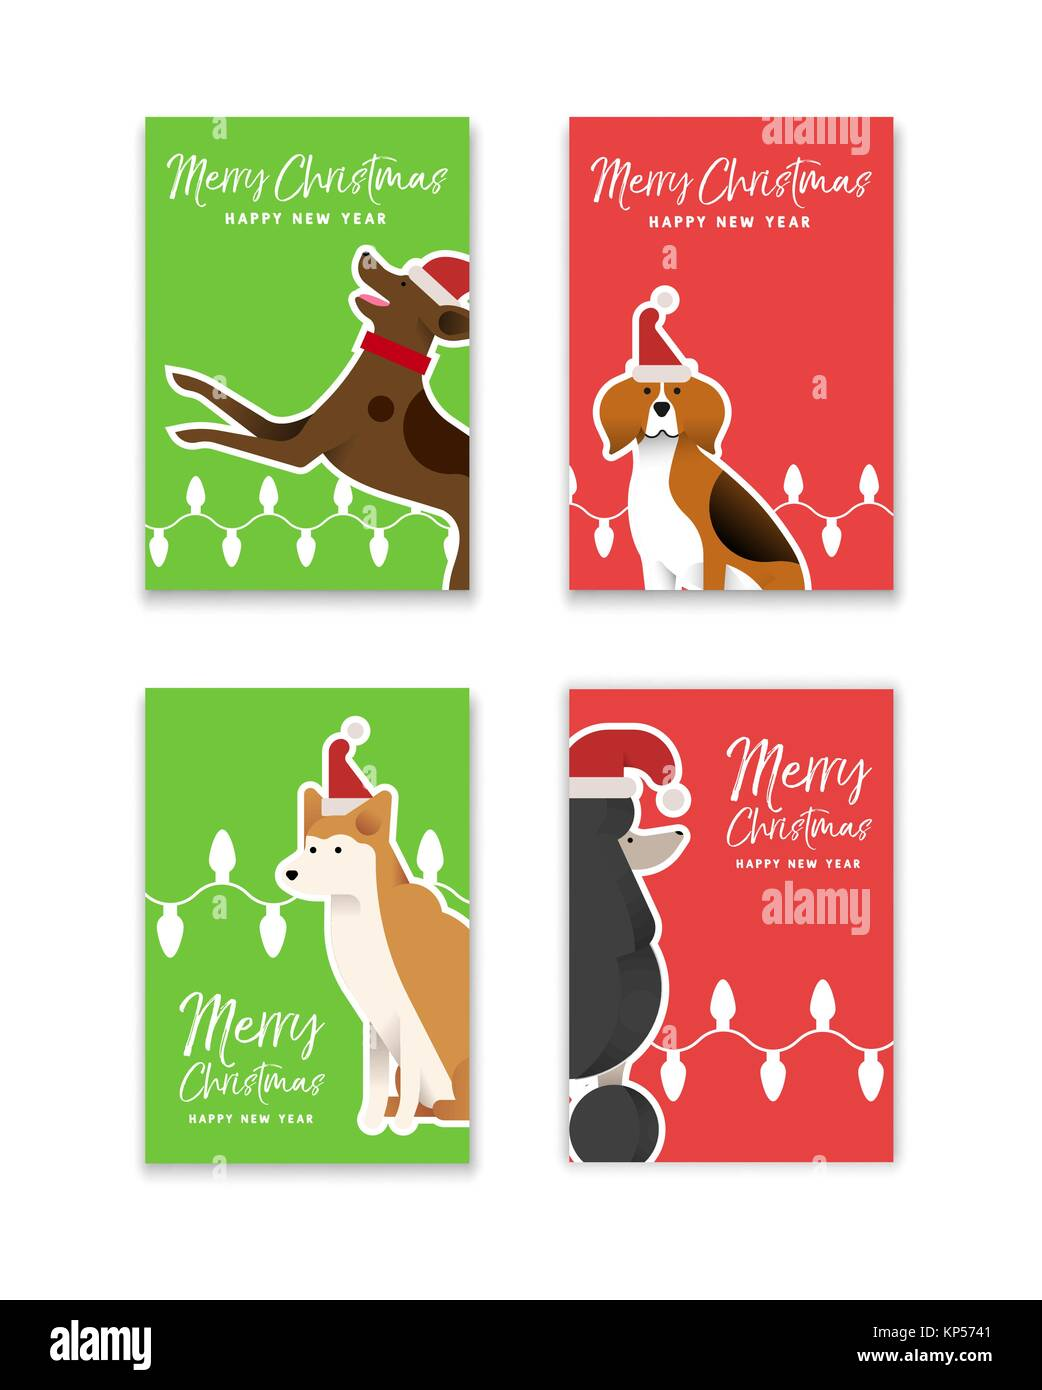 merry christmas happy new year greeting card set with funny dog illustrations in flat art style includes beagle shiba inu and poodle breeds eps10 v